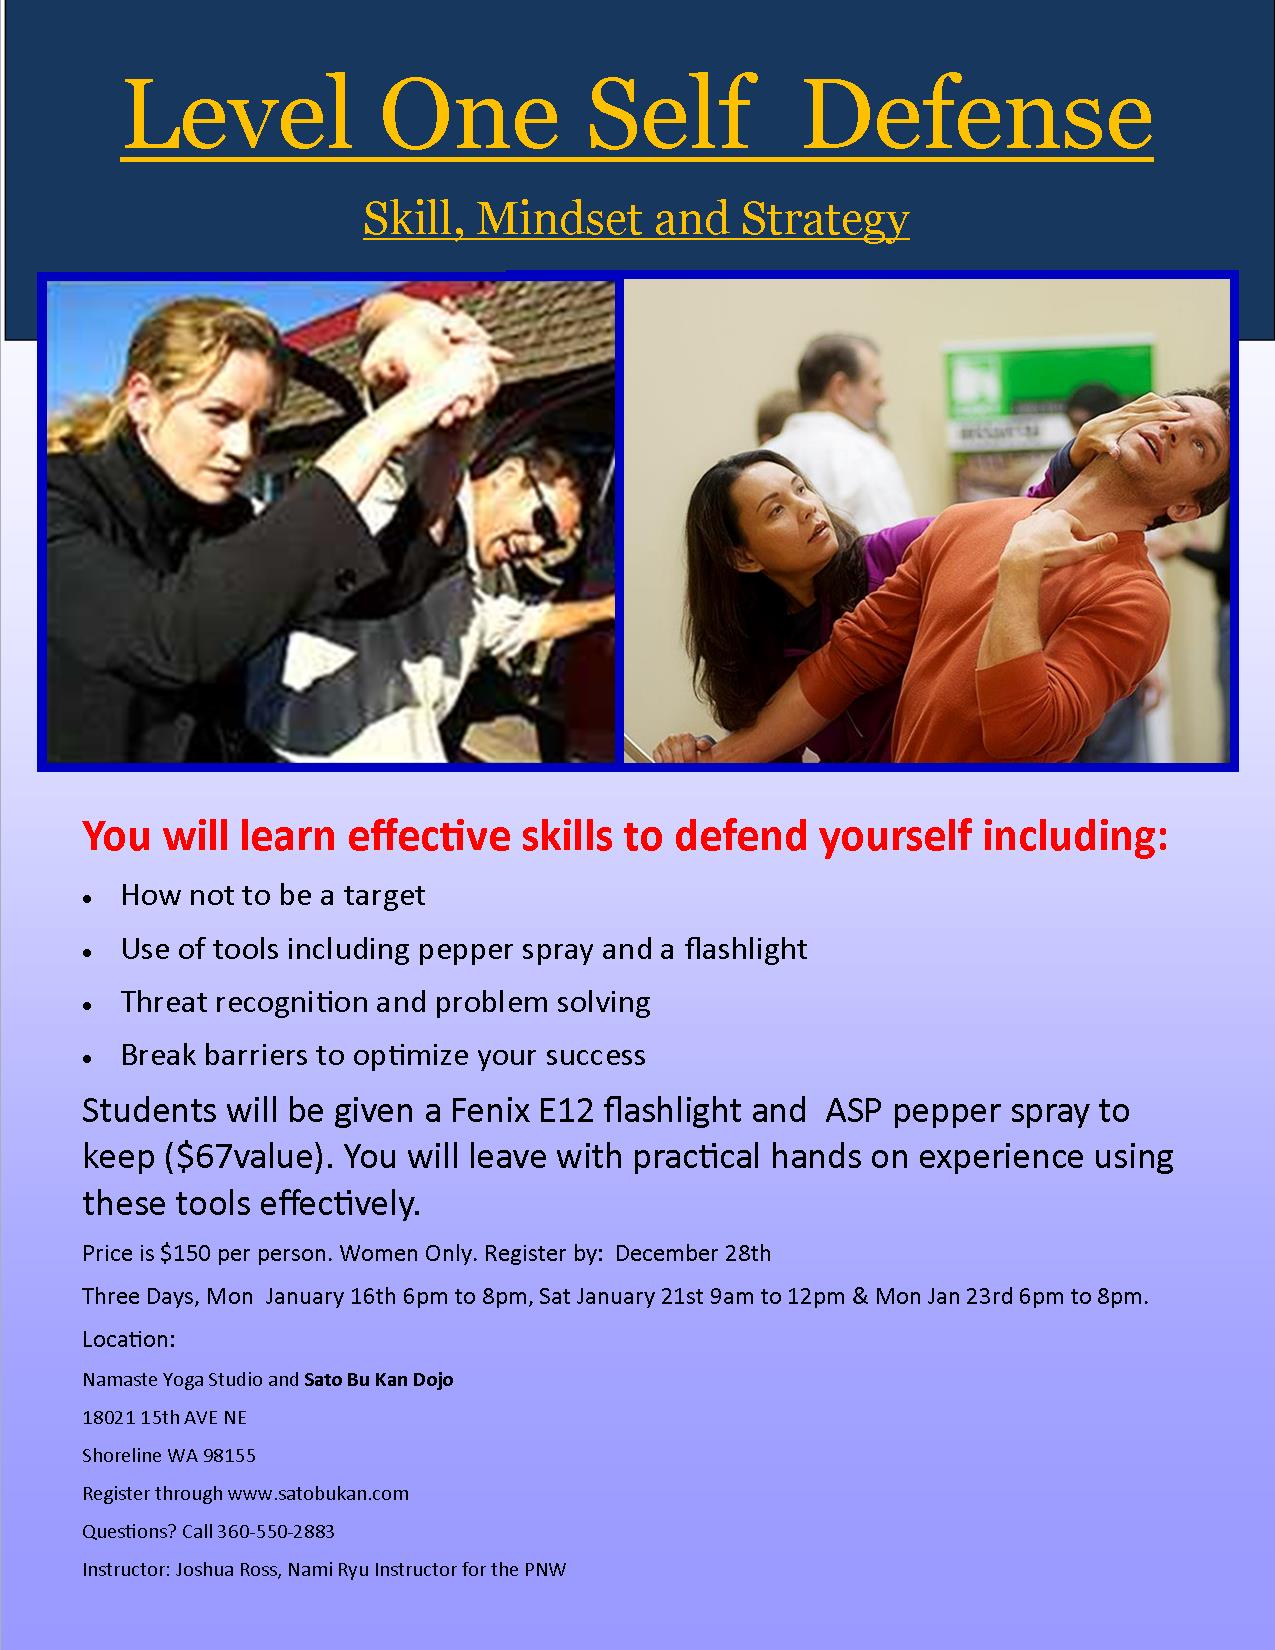 level-one-self-defense-course